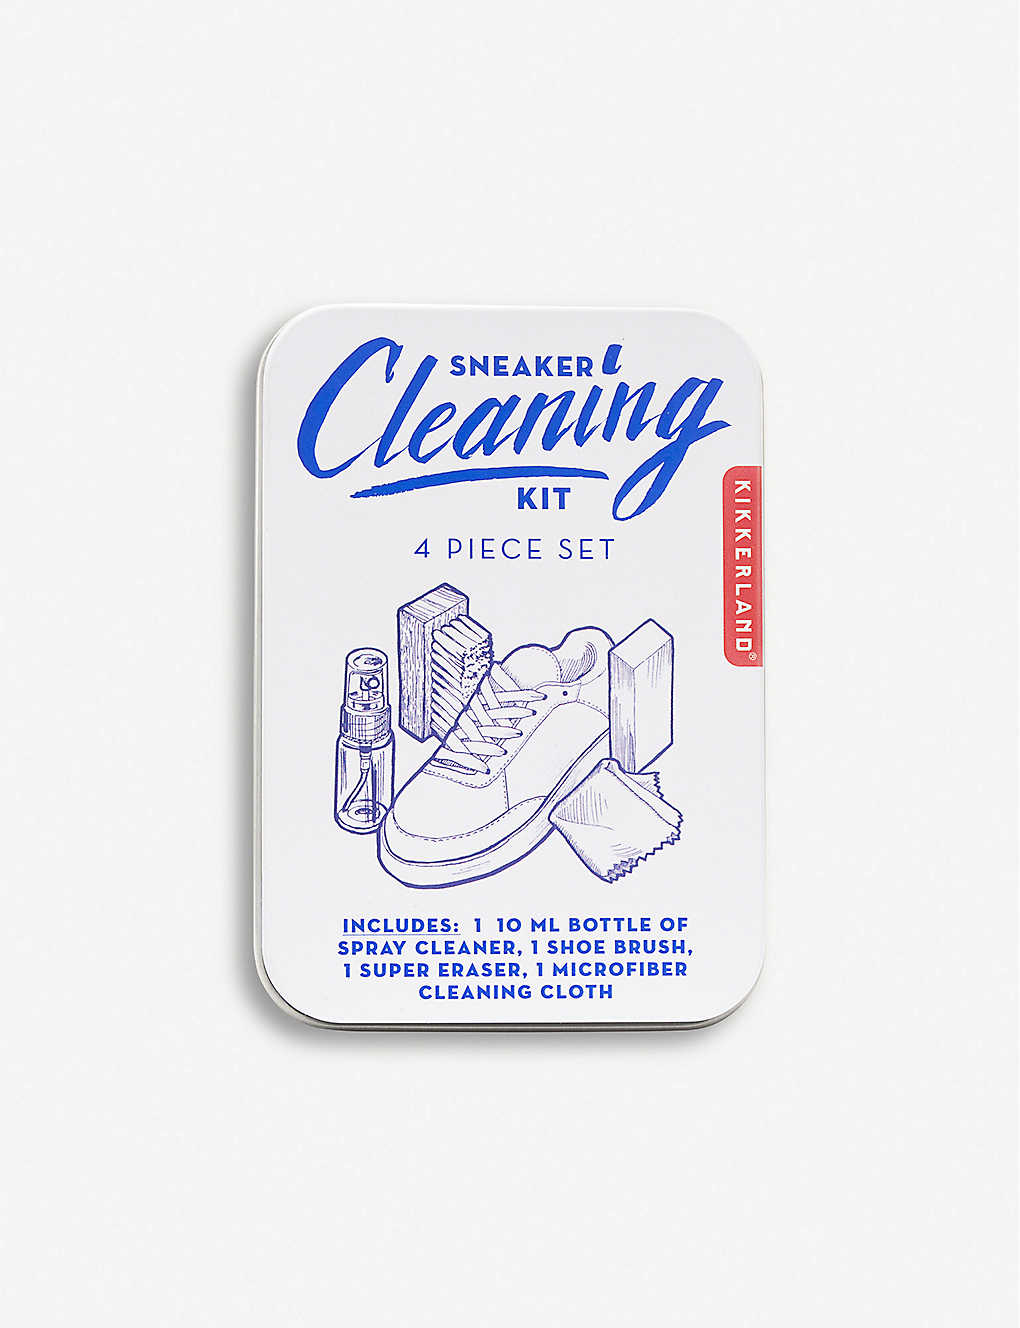 KIKKERLAND: Sneaker cleaning kit